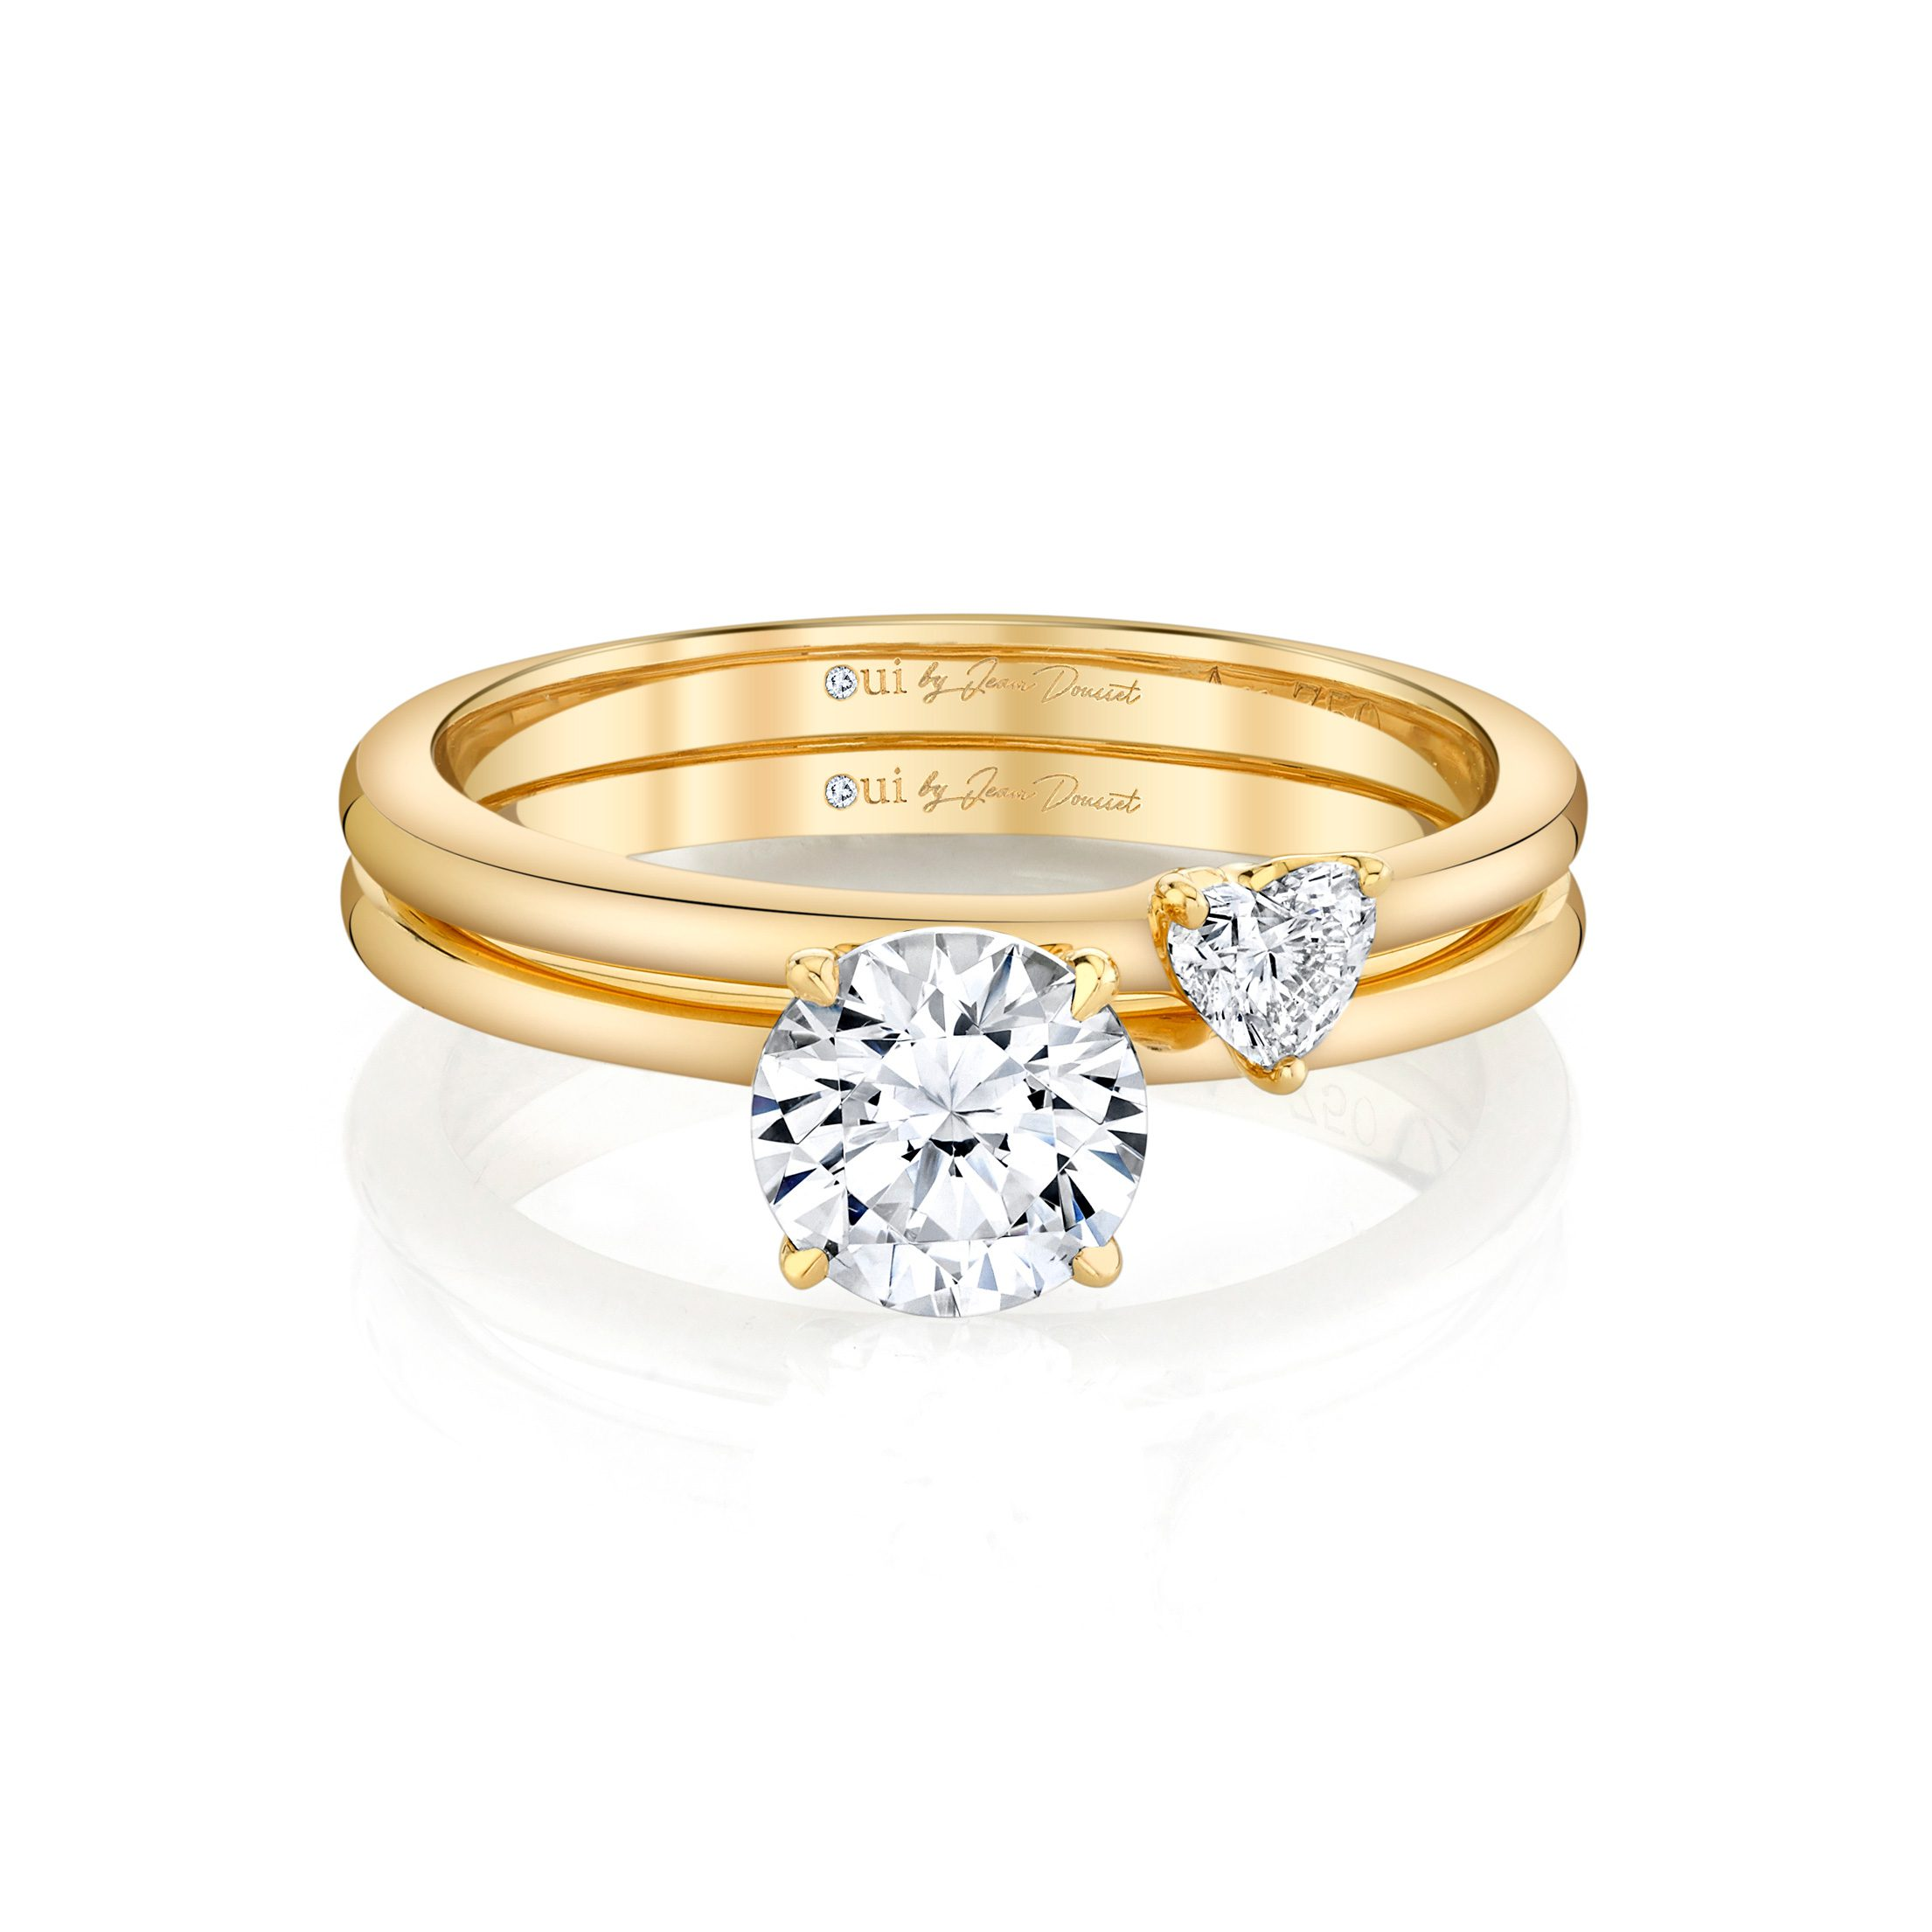 Perfect Duo Interlocking Round Brilliant Solitaire Engagement Ring & Heart Diamond Wedding Band Set 18k Yellow Gold Side View by Oui by Jean Dousset